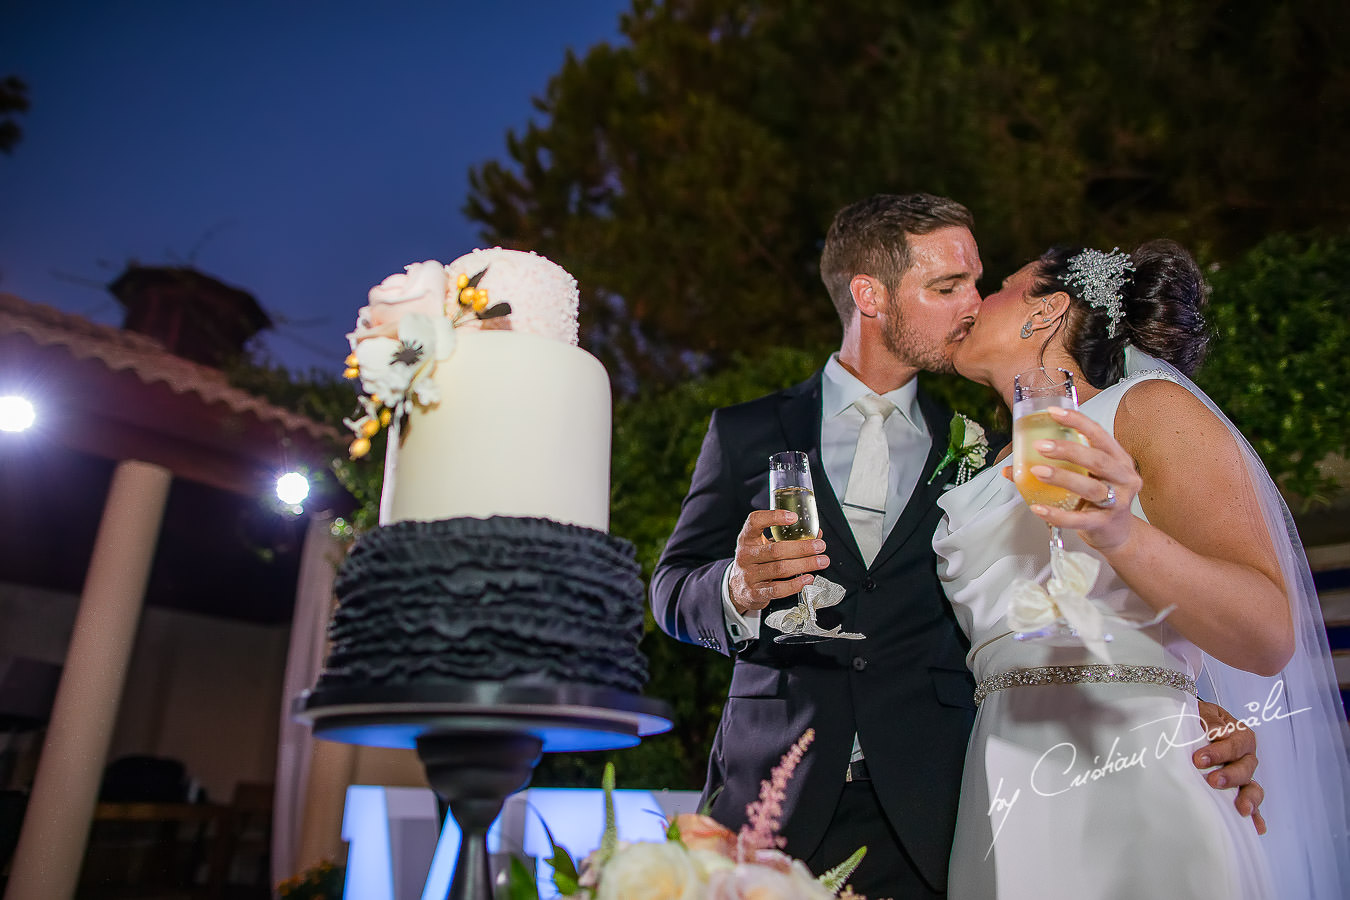 Cutting the cake moments captured by Cristian Dascalu during an elegant Aphrodite Hills Wedding in Cyprus.